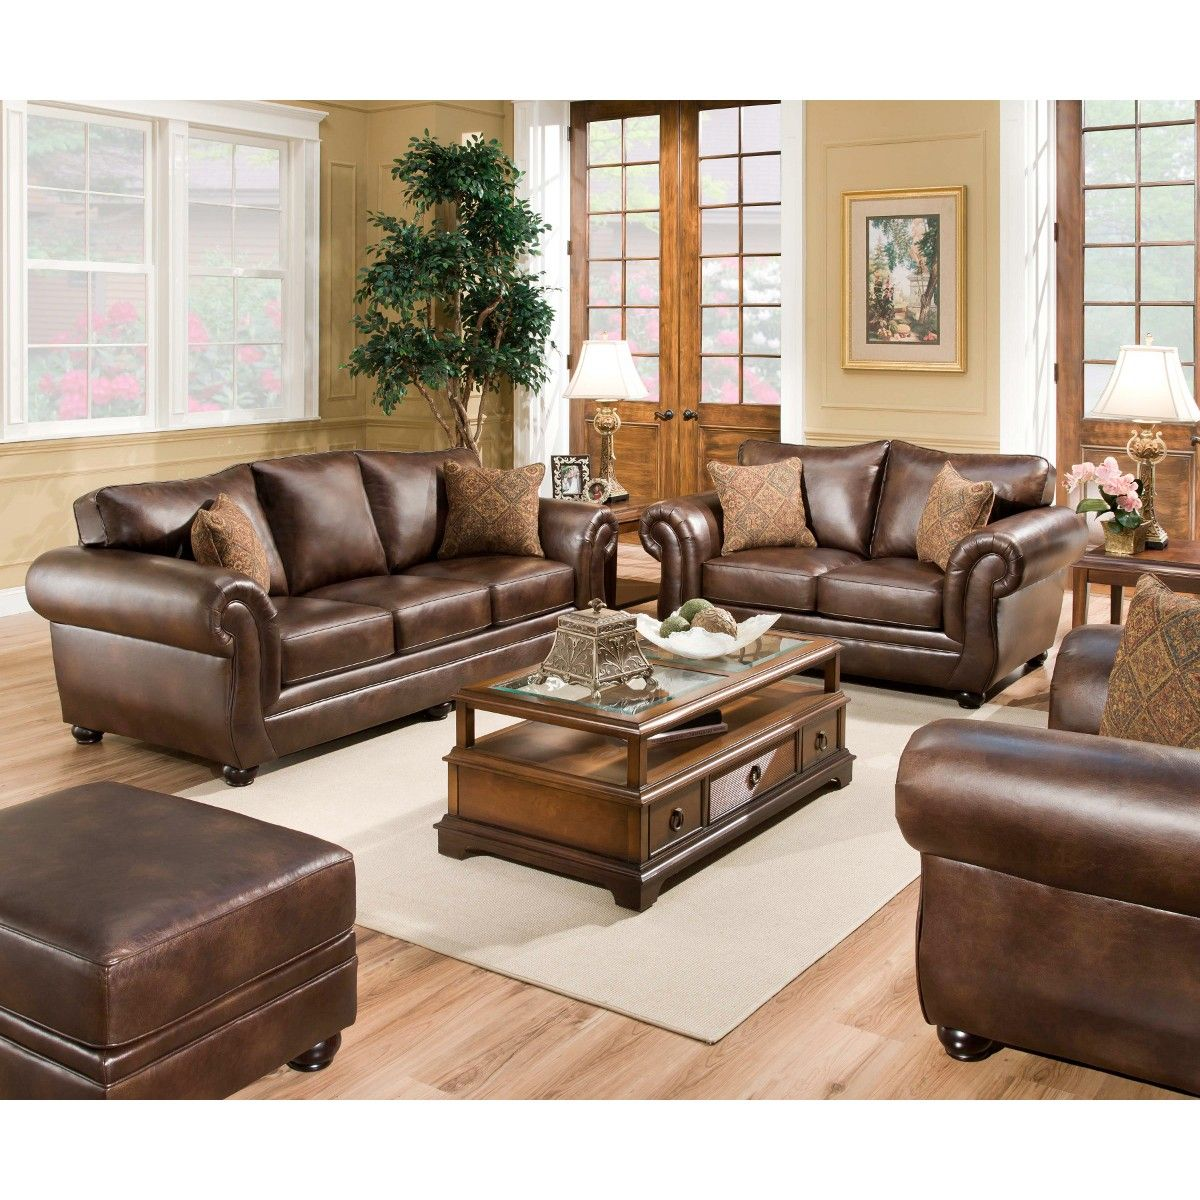 404 Not Found 1 Leather Living Room